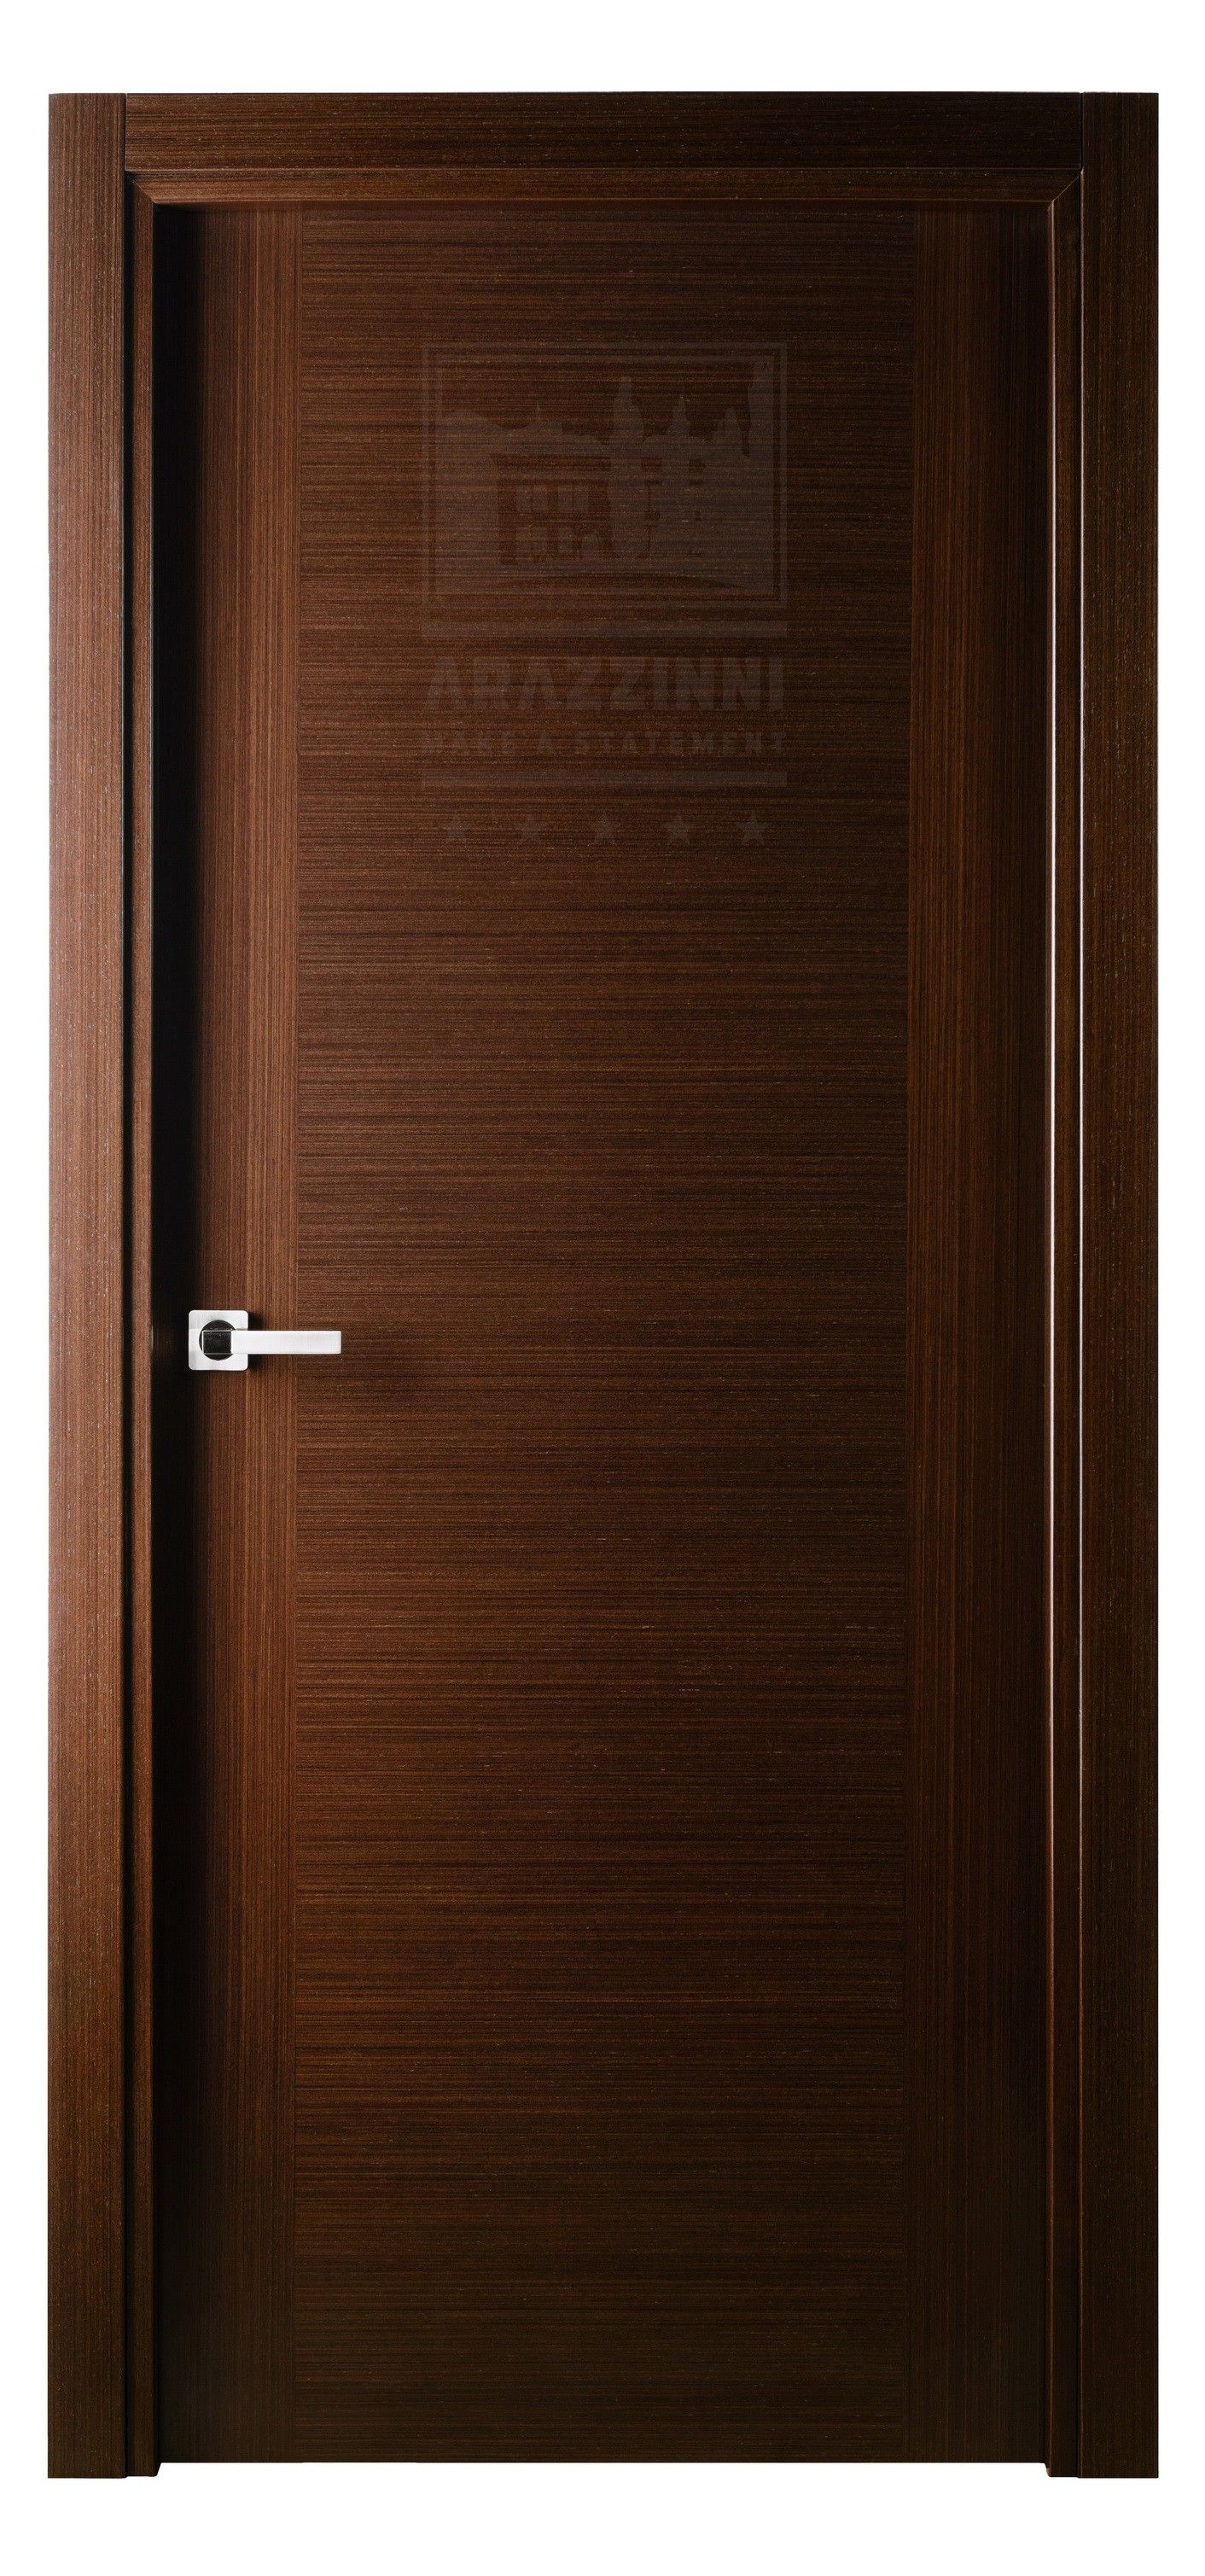 the style of door the arazzinni antha interior door adds flare to any part of your house whether it is introducing a bedroom or bathroom